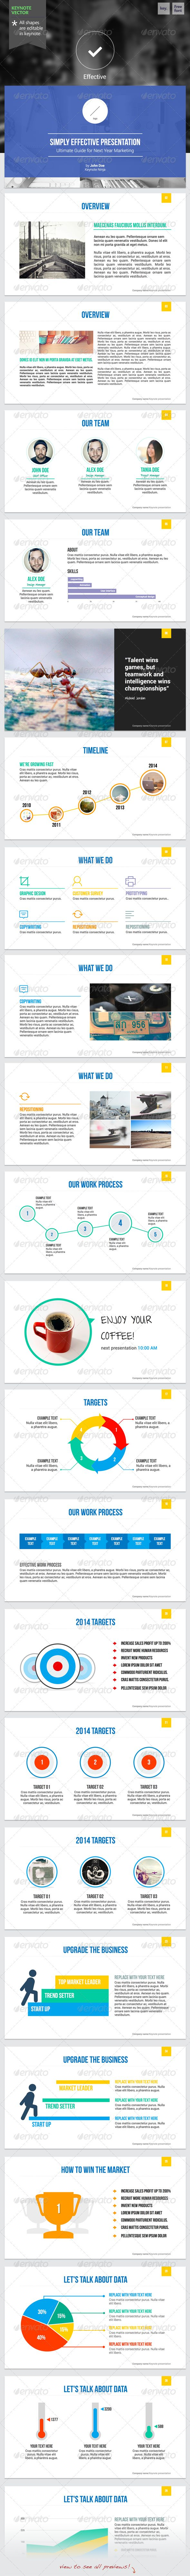 124 best keynote themes templates images on pinterest effective keynote template professional presentationpresentation layoutpresentation templateskeynote templatefont freefont familycompany toneelgroepblik Gallery